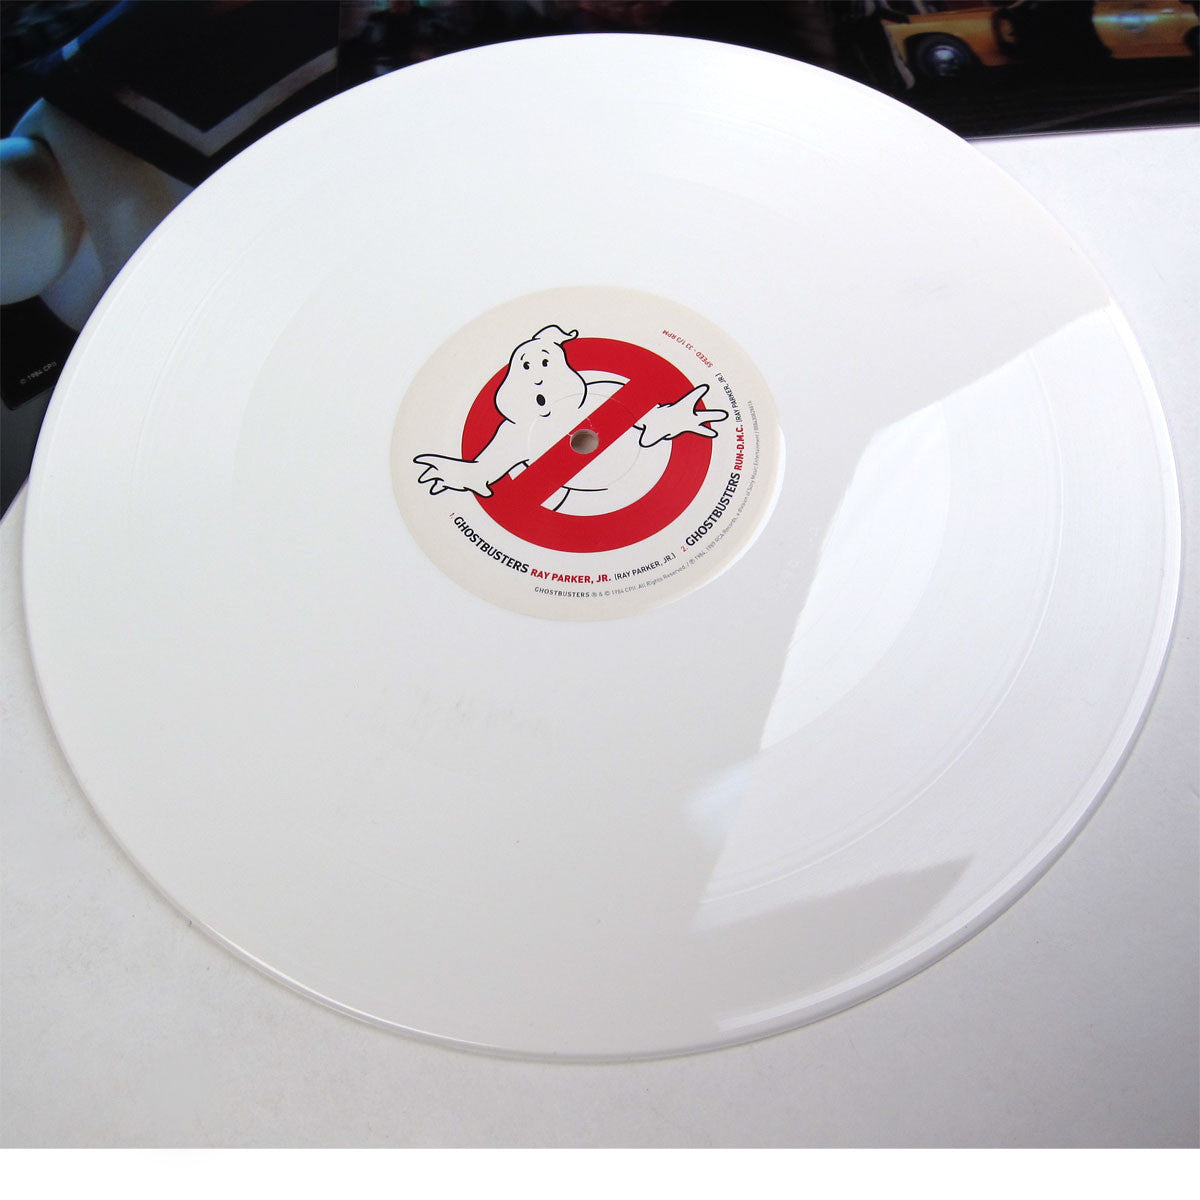 Ghostbusters: Ghostbusters Stay Puft Edition (Colored Vinyl) Vinyl 12""